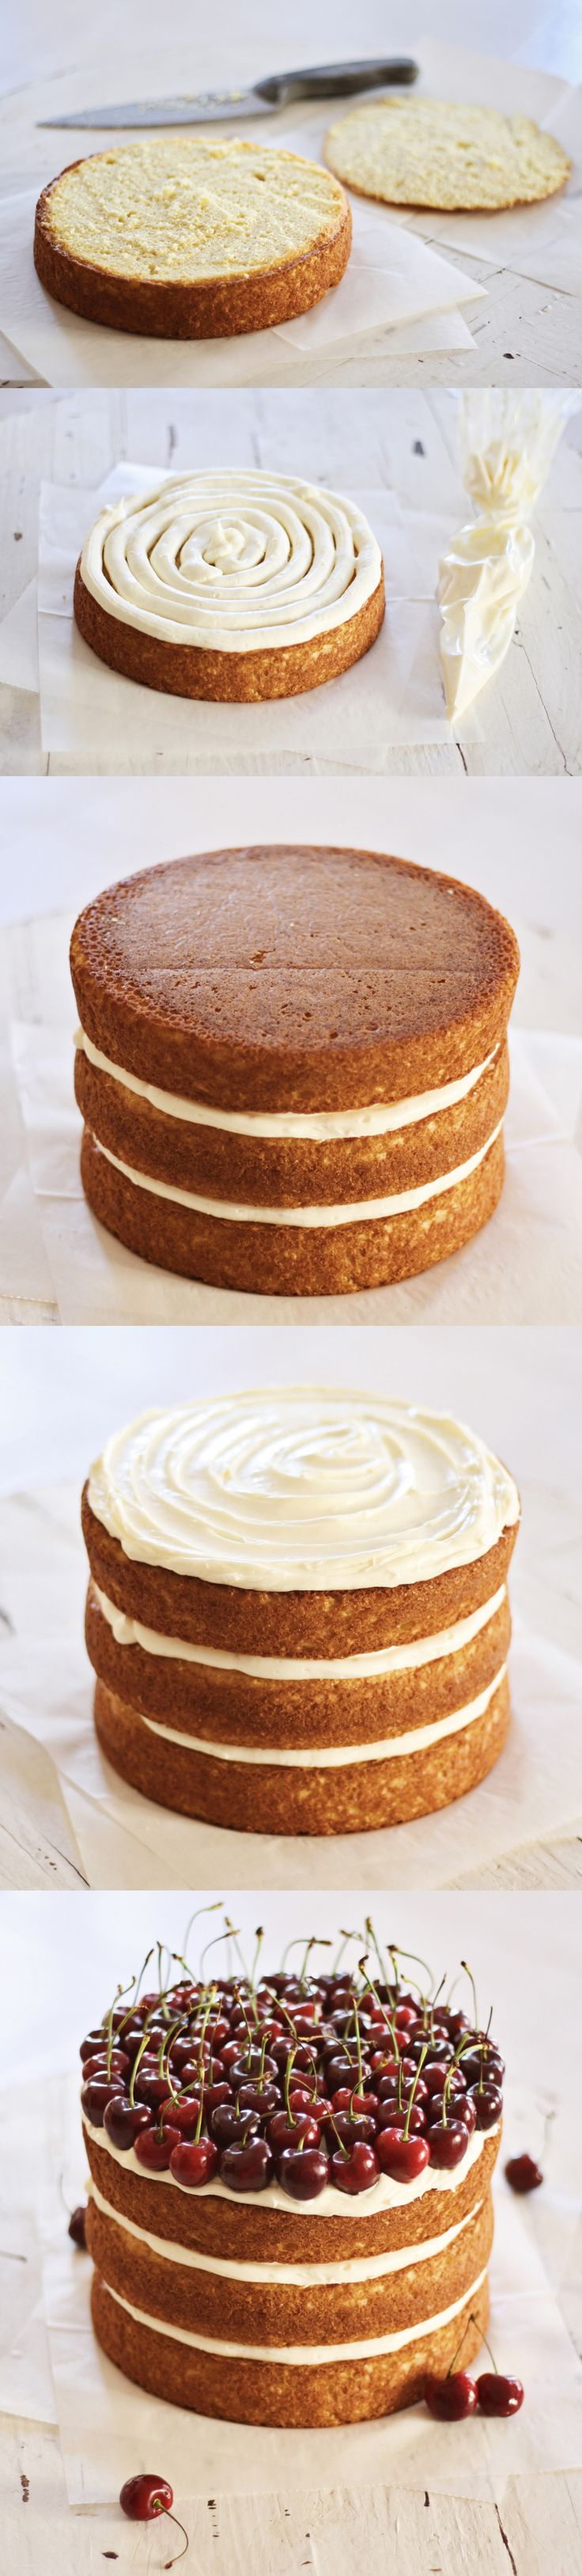 How To Make A Naked Cake...